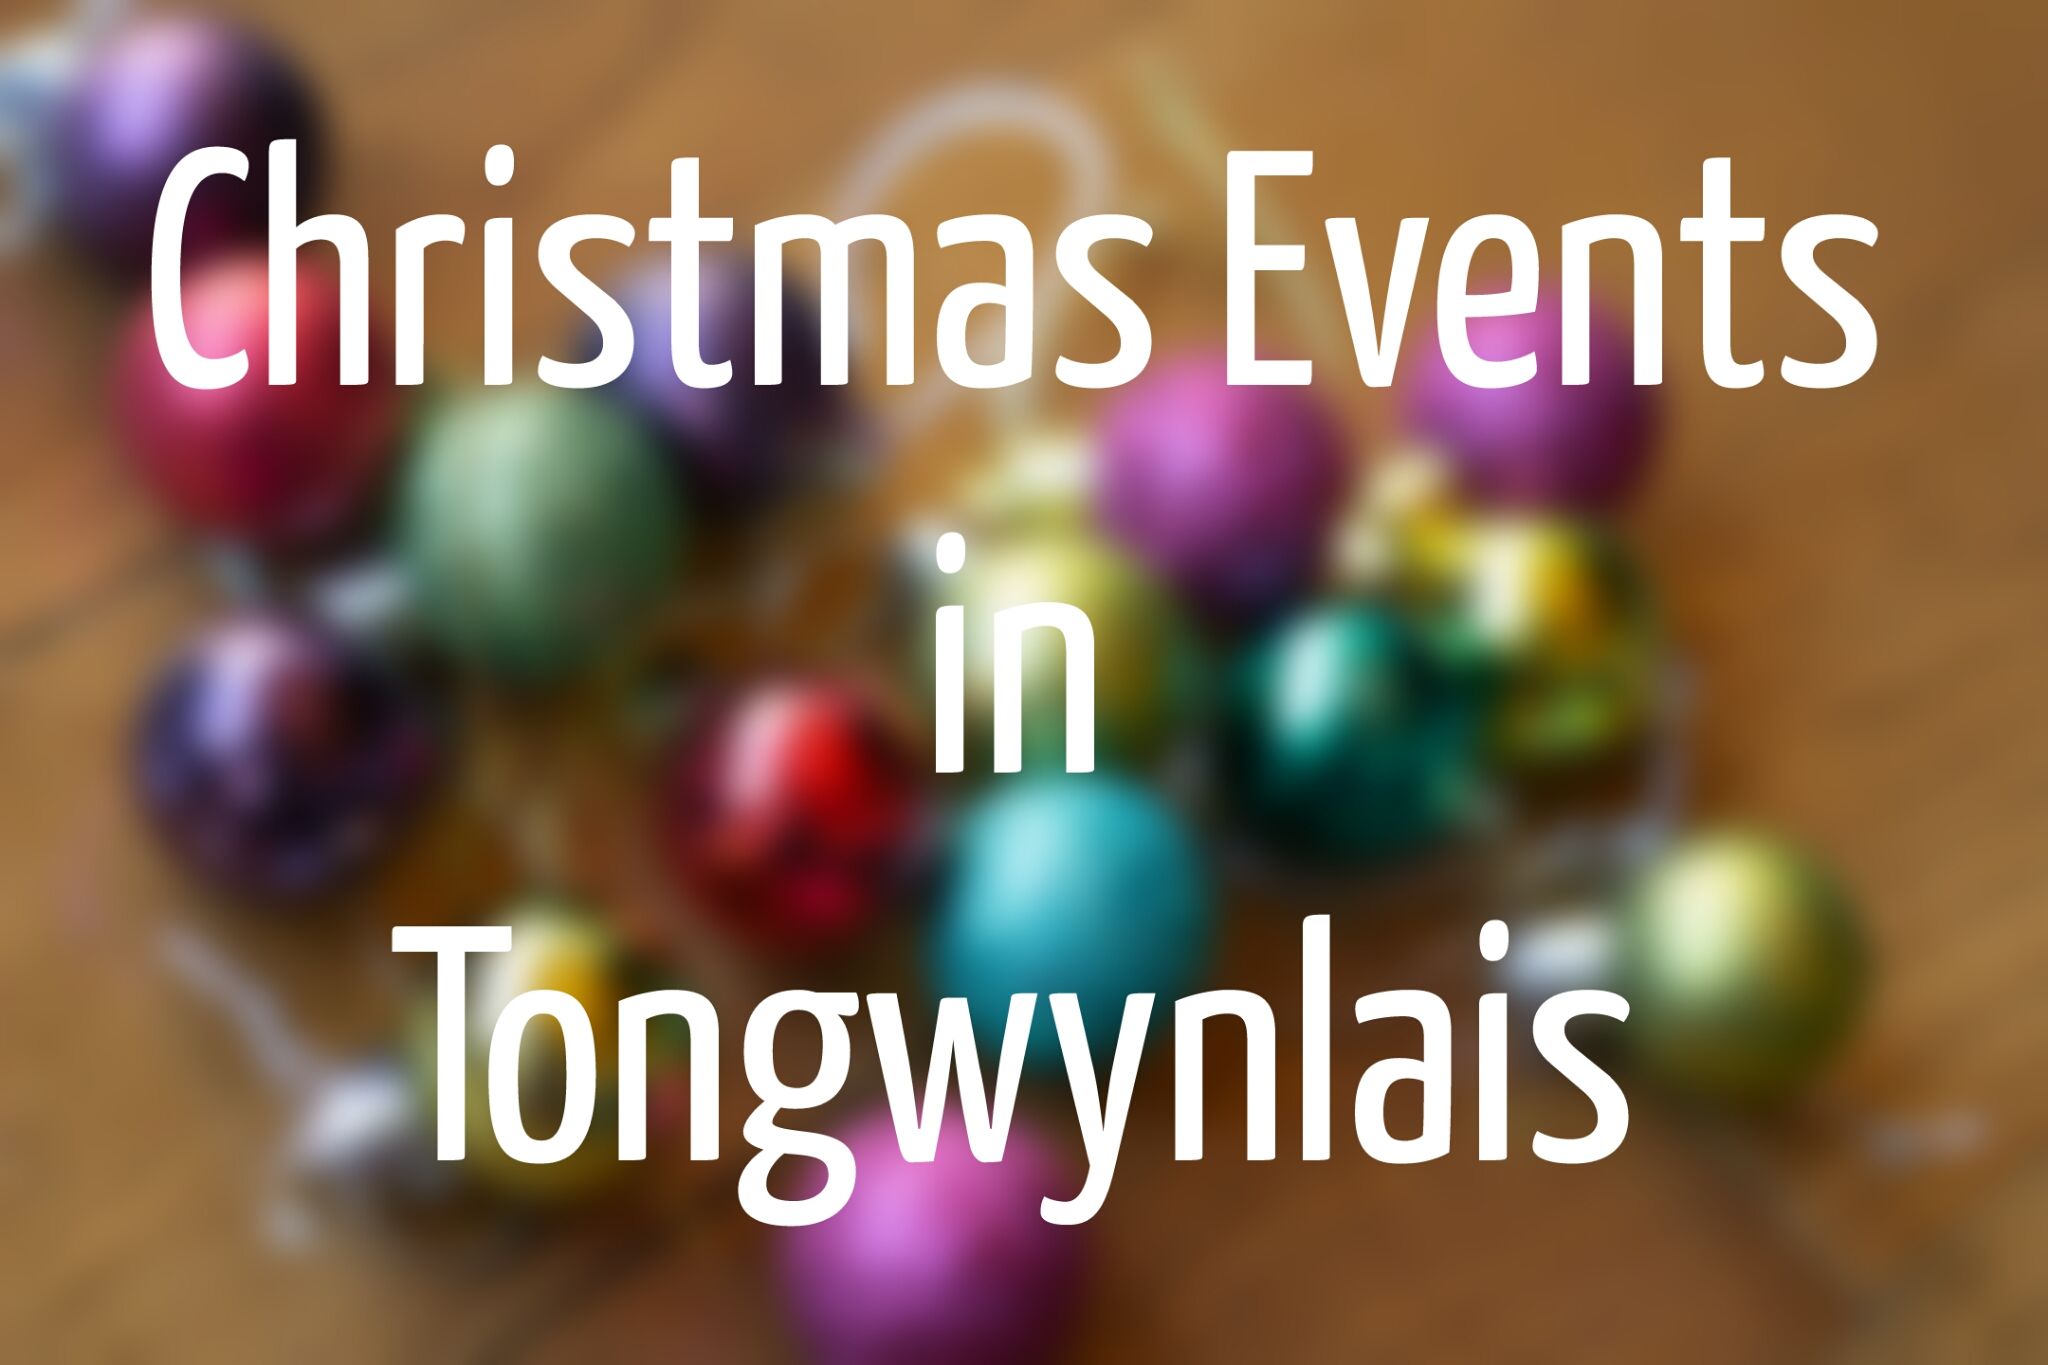 Christmas Events in Tongwynlais header